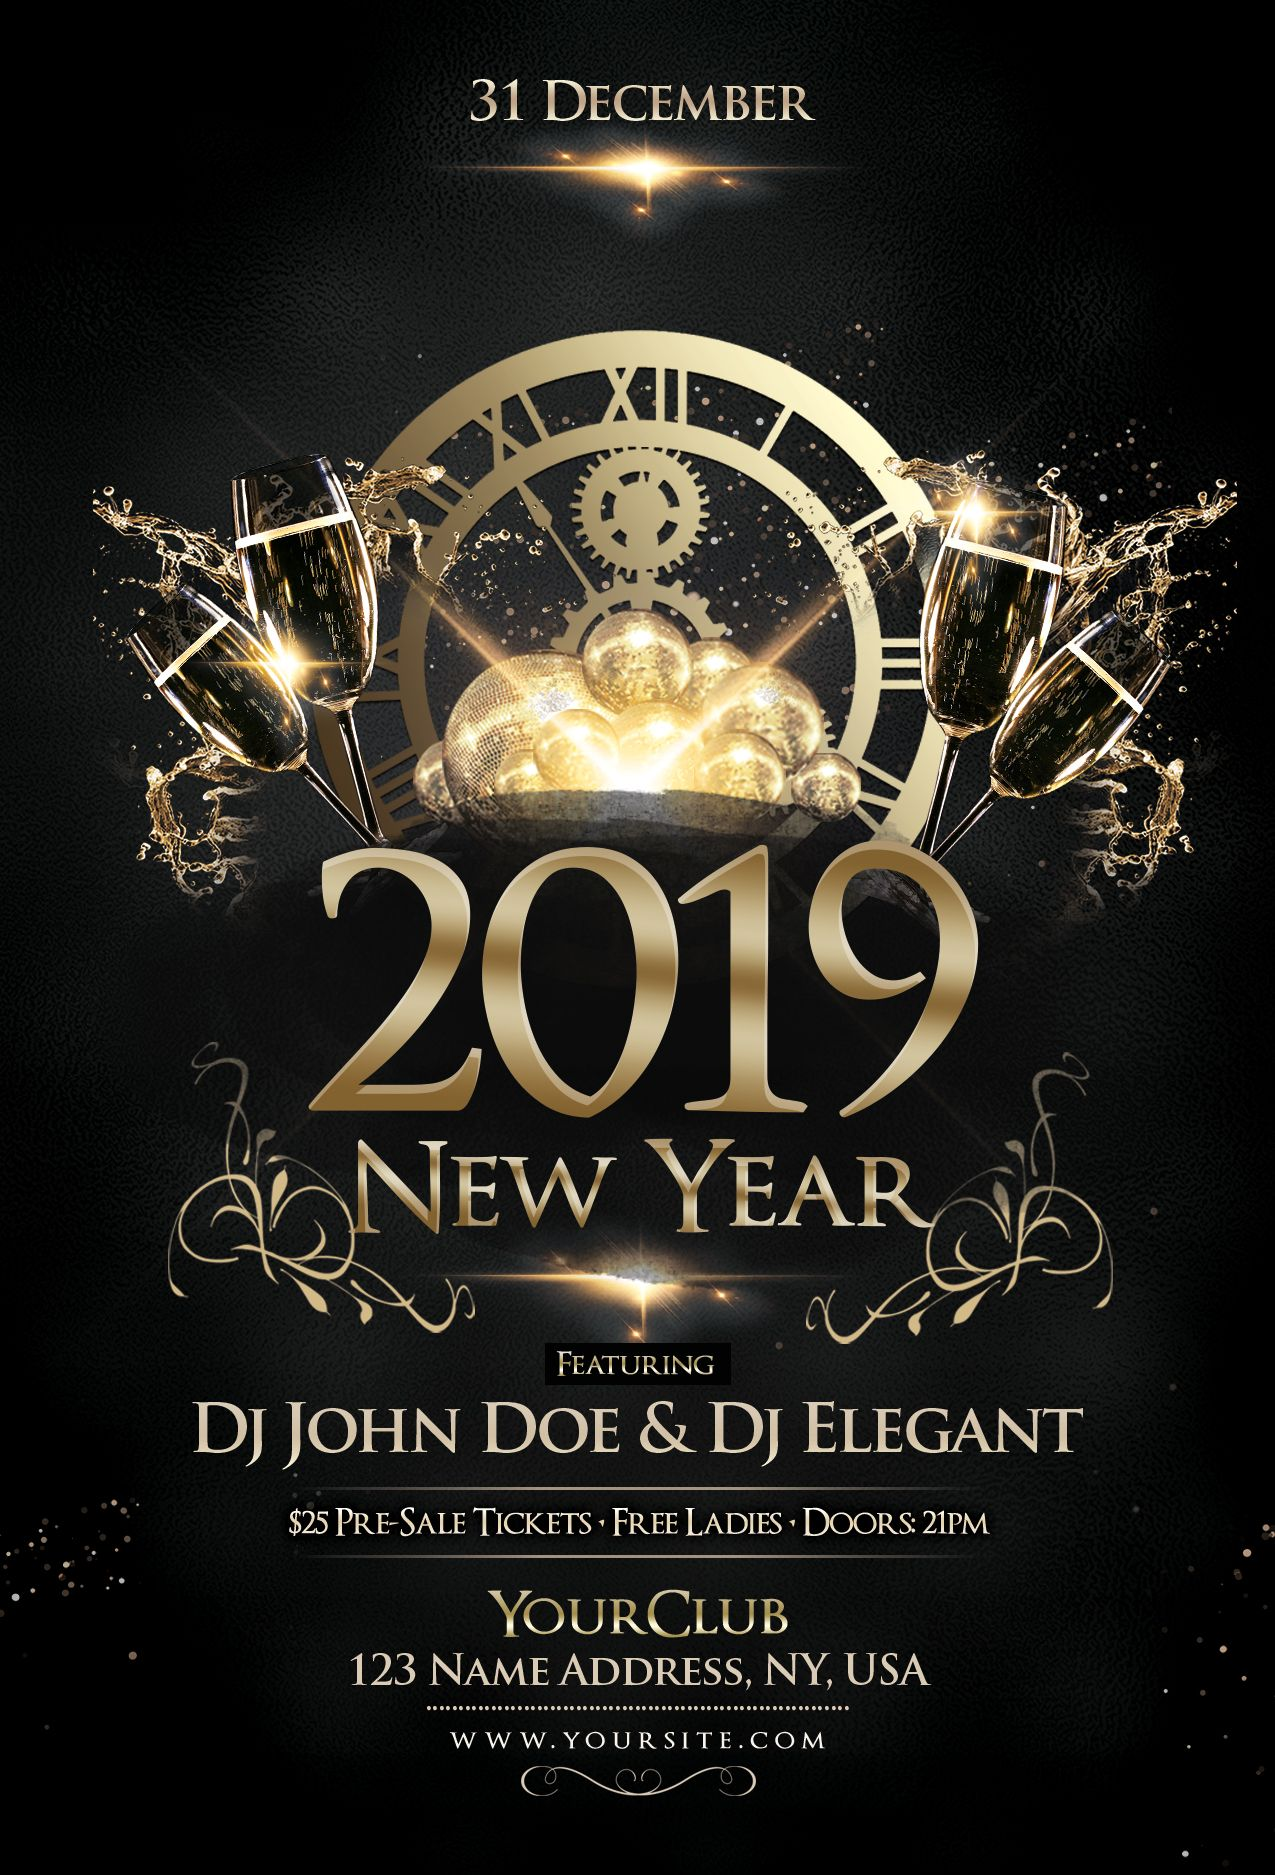 Happy New Year 2019 Free Psd Flyer Template Pixelsdesign Free Psd Flyer Templates Free Psd Flyer New Year S Eve Flyer